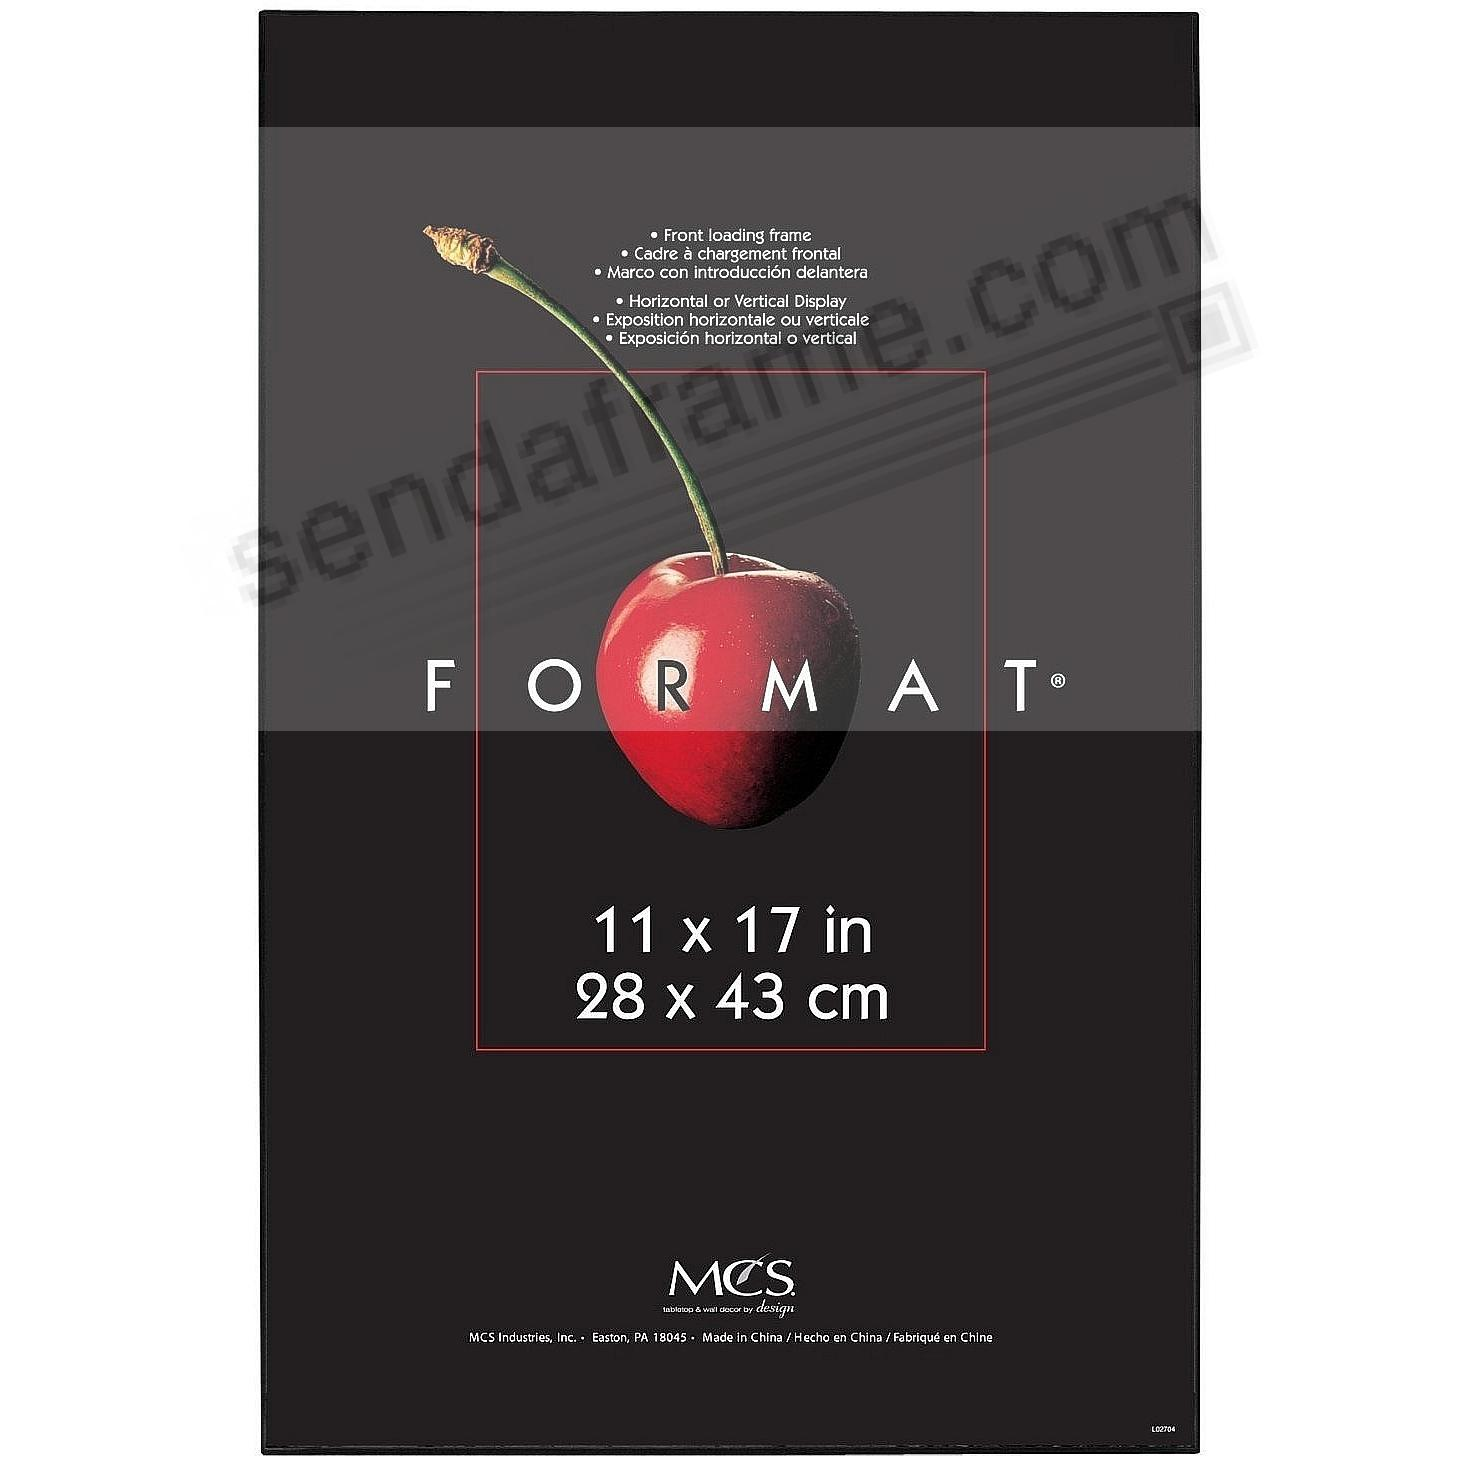 The ORIGINAL FORMAT FRONT-LOAD Black ABS document/print 11x17